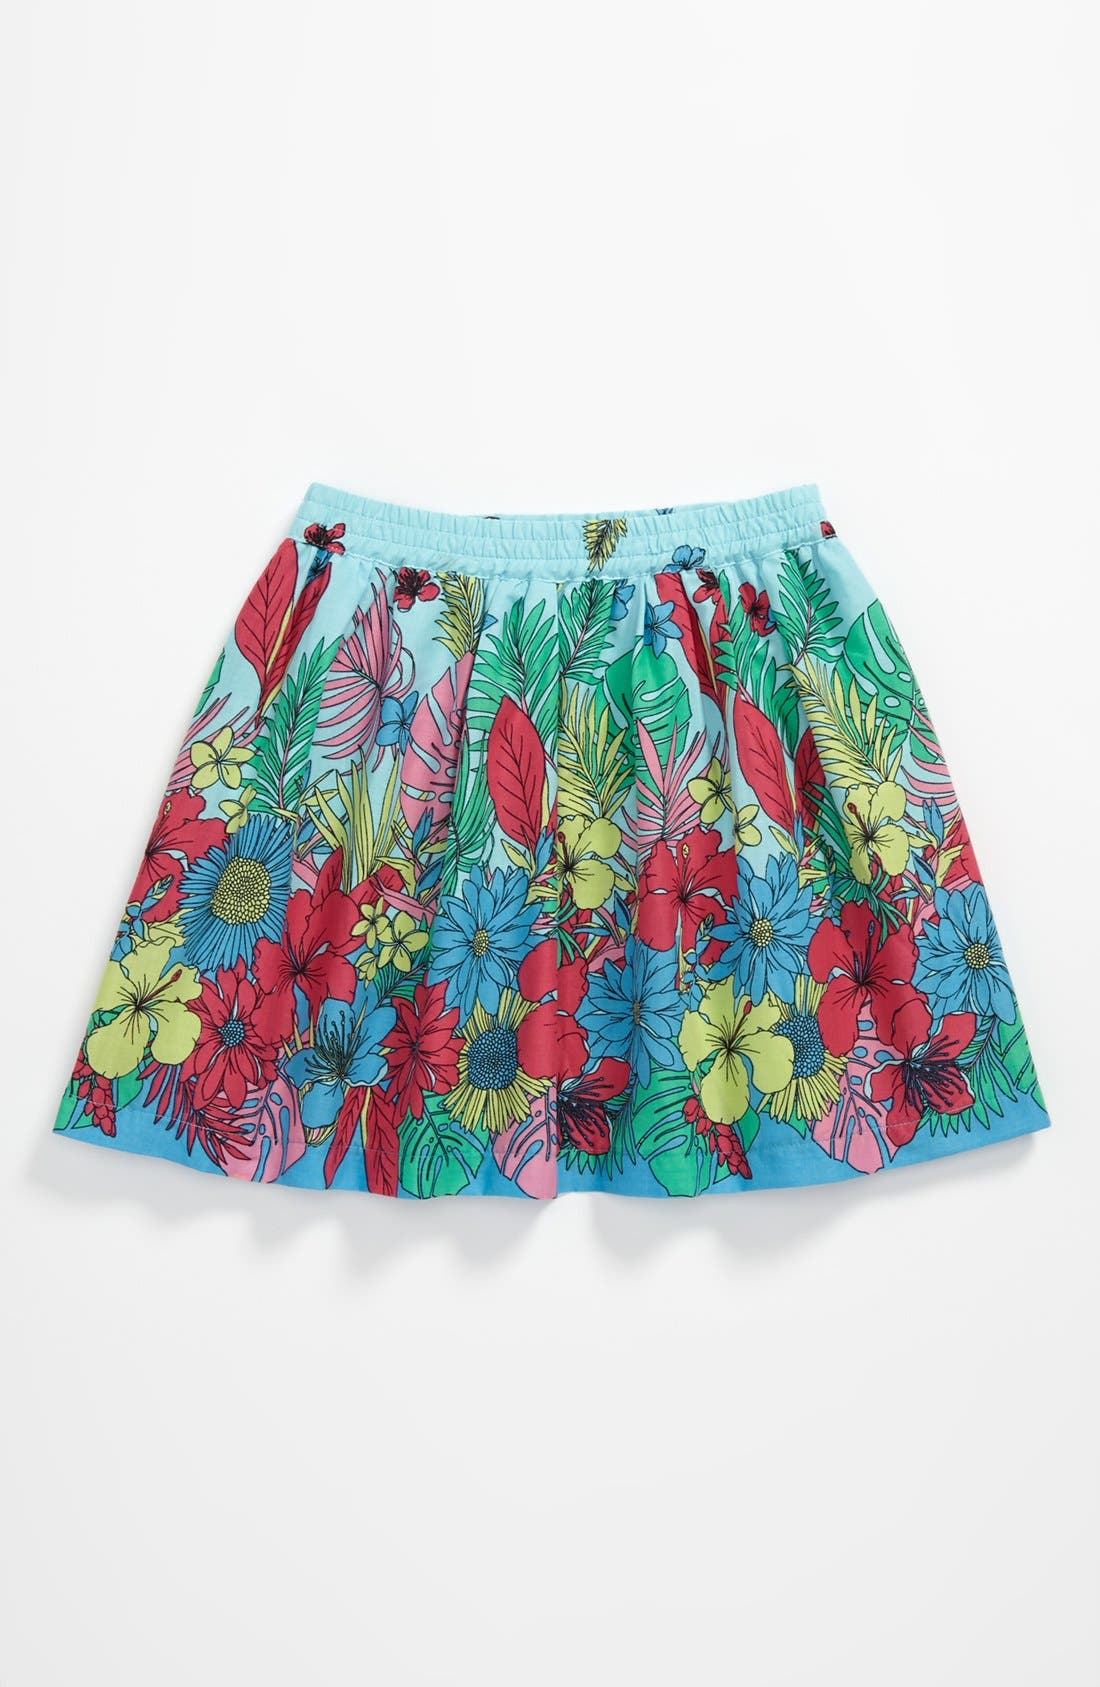 Alternate Image 1 Selected - Pumpkin Patch Tropical Print Skirt (Baby)